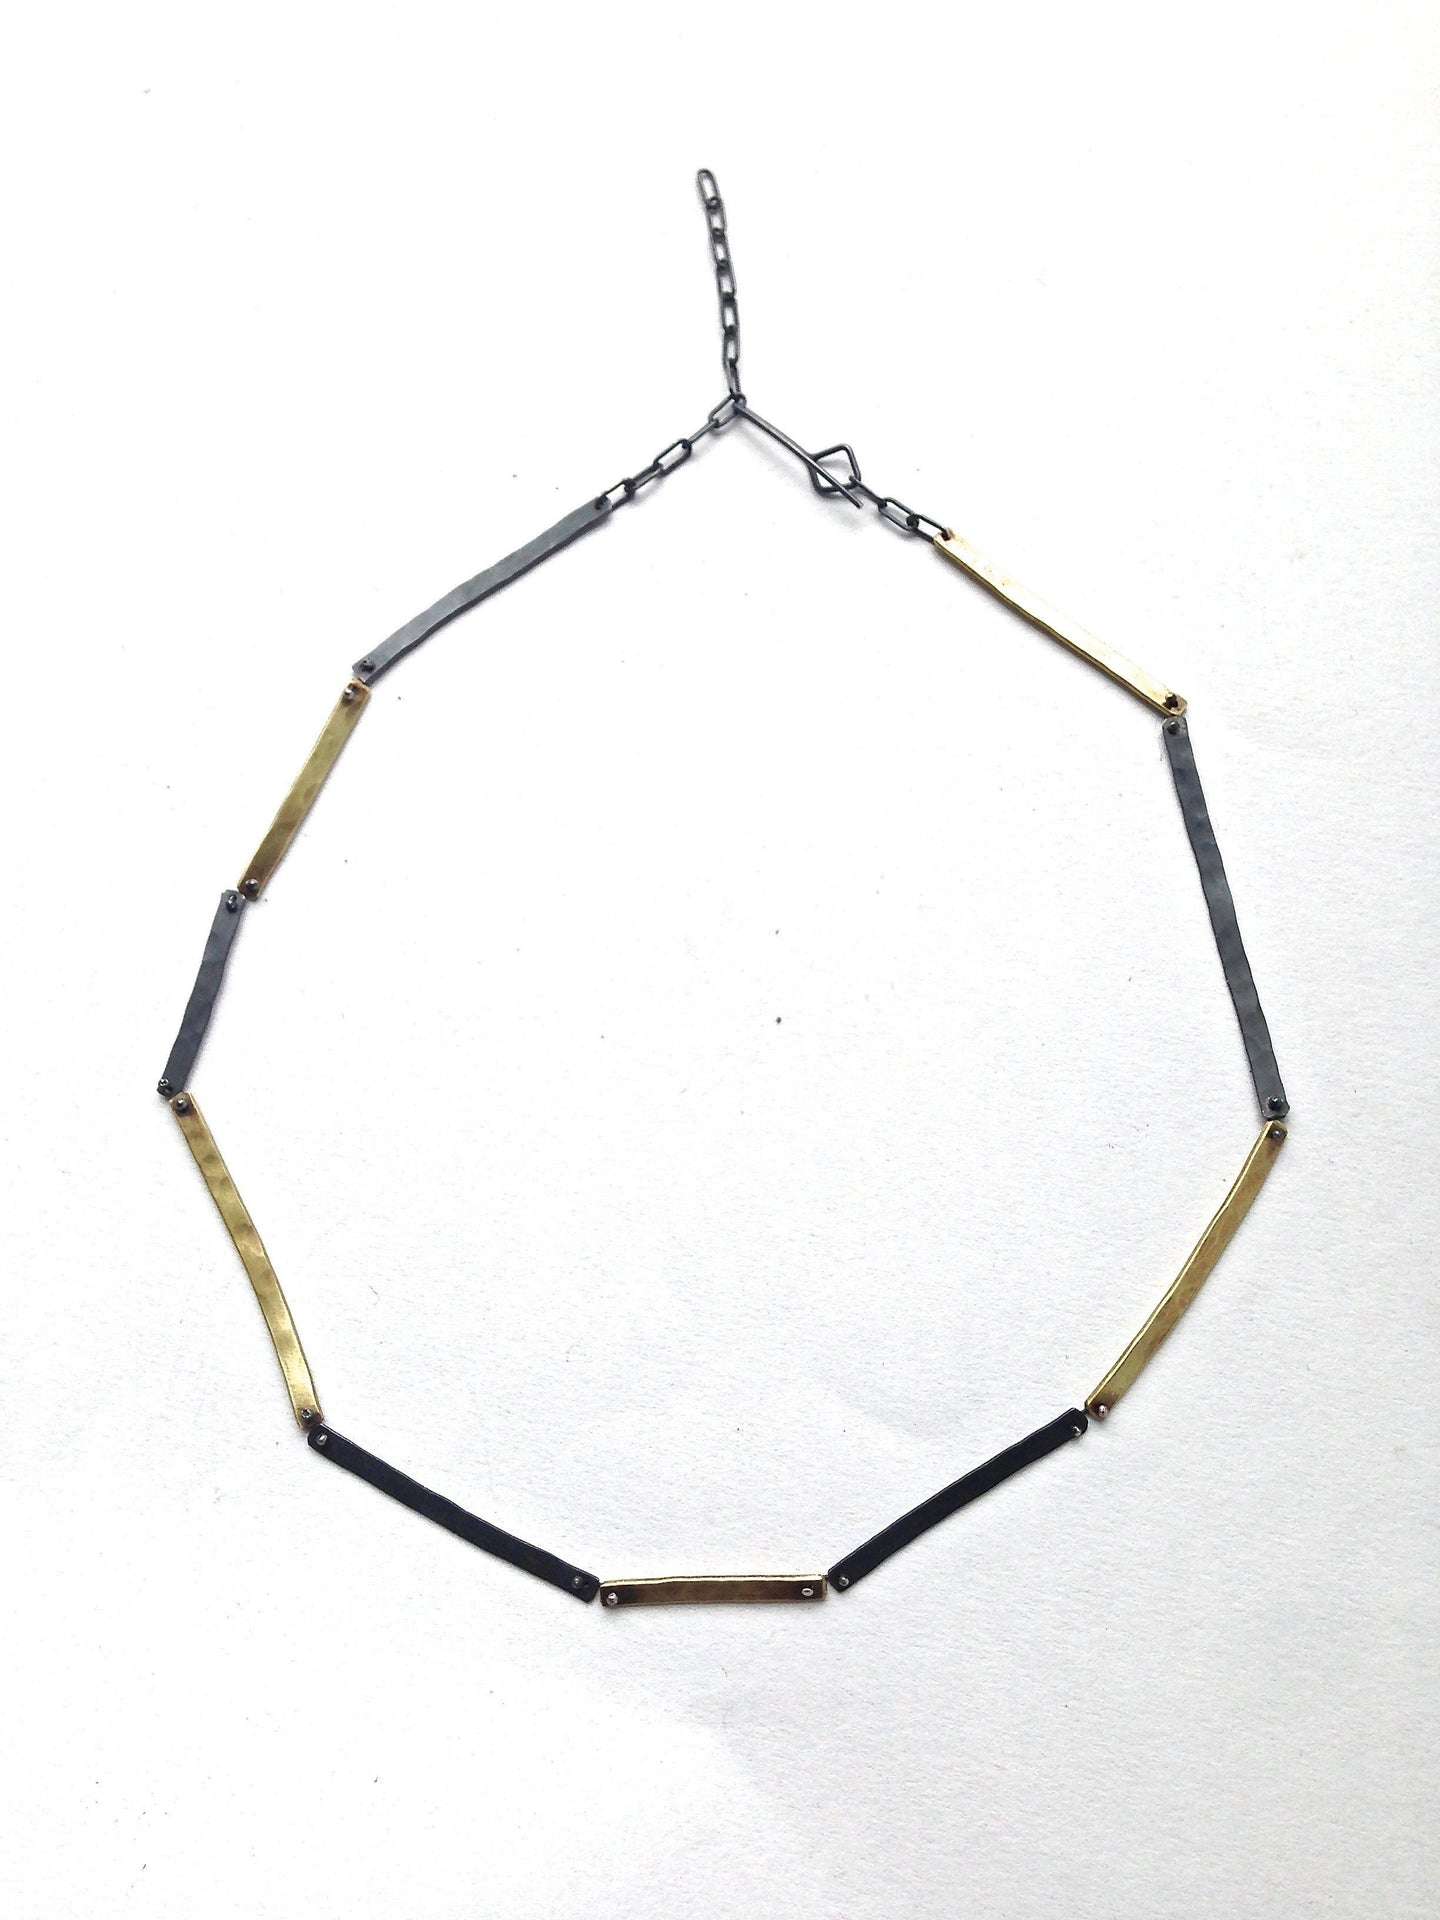 Di Luce Design | N-Link in Oxidized Silver & Brass at SHiFT Bainbridge